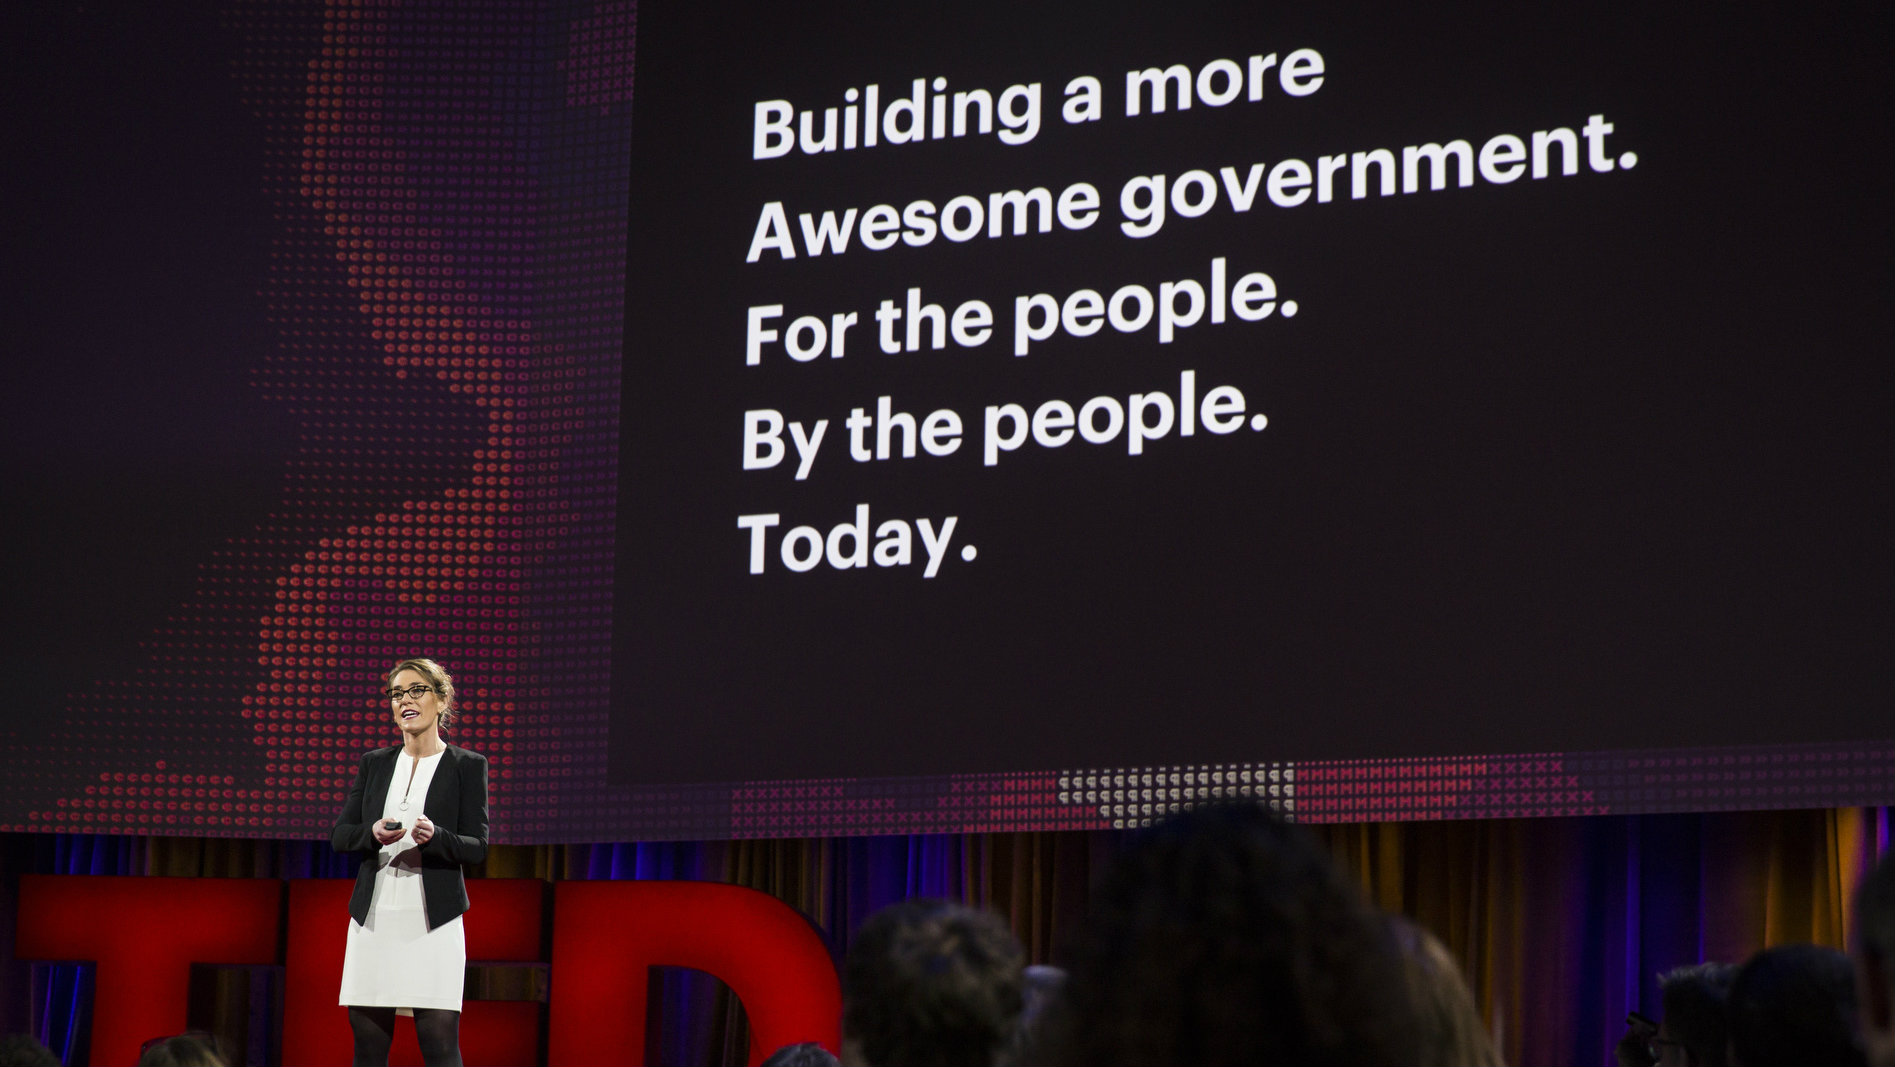 Haley Van Dyck speaks at TED2016 - Dream, February 15-19, 2016, Vancouver Convention Center, Vancouver, Canada.